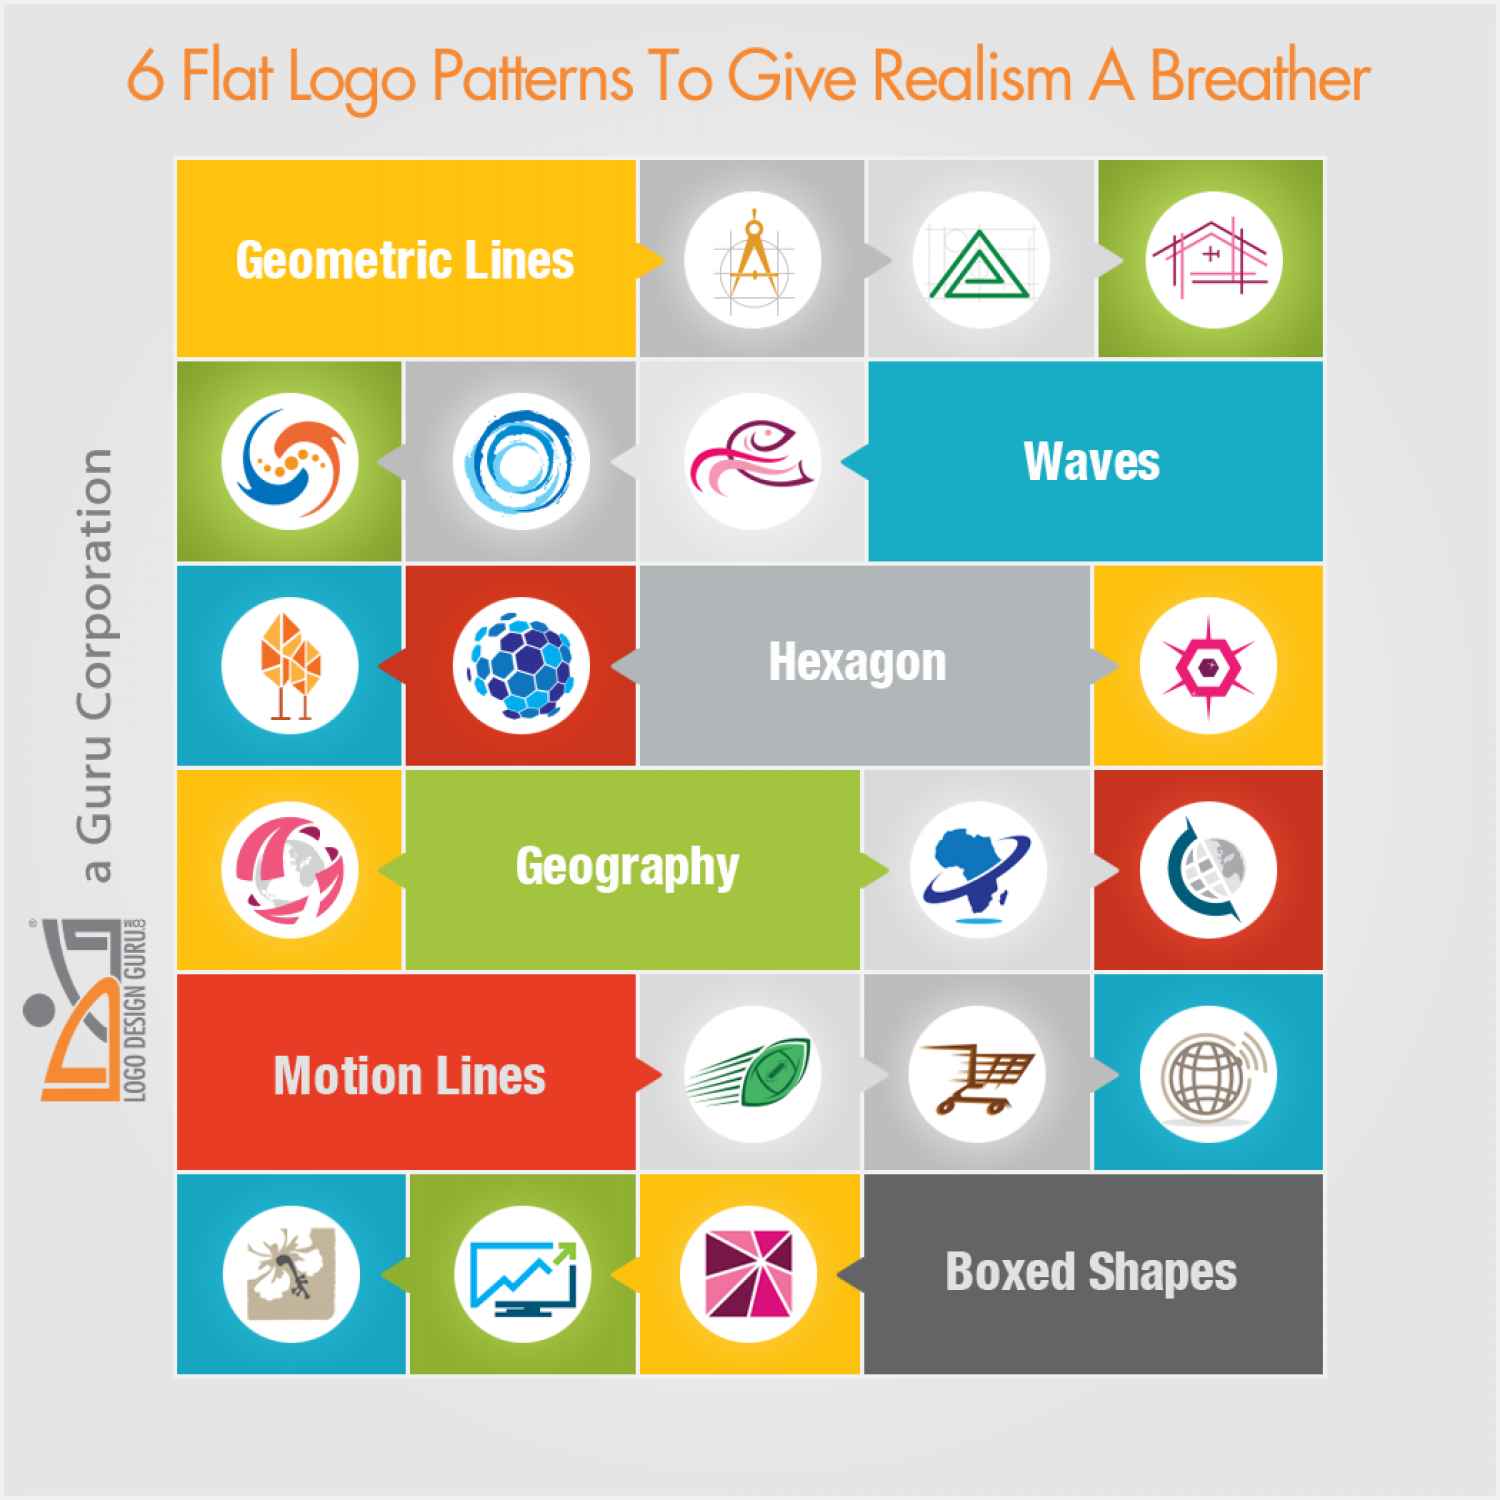 6 Flat Logo Patterns to give Realism a breather Infographic